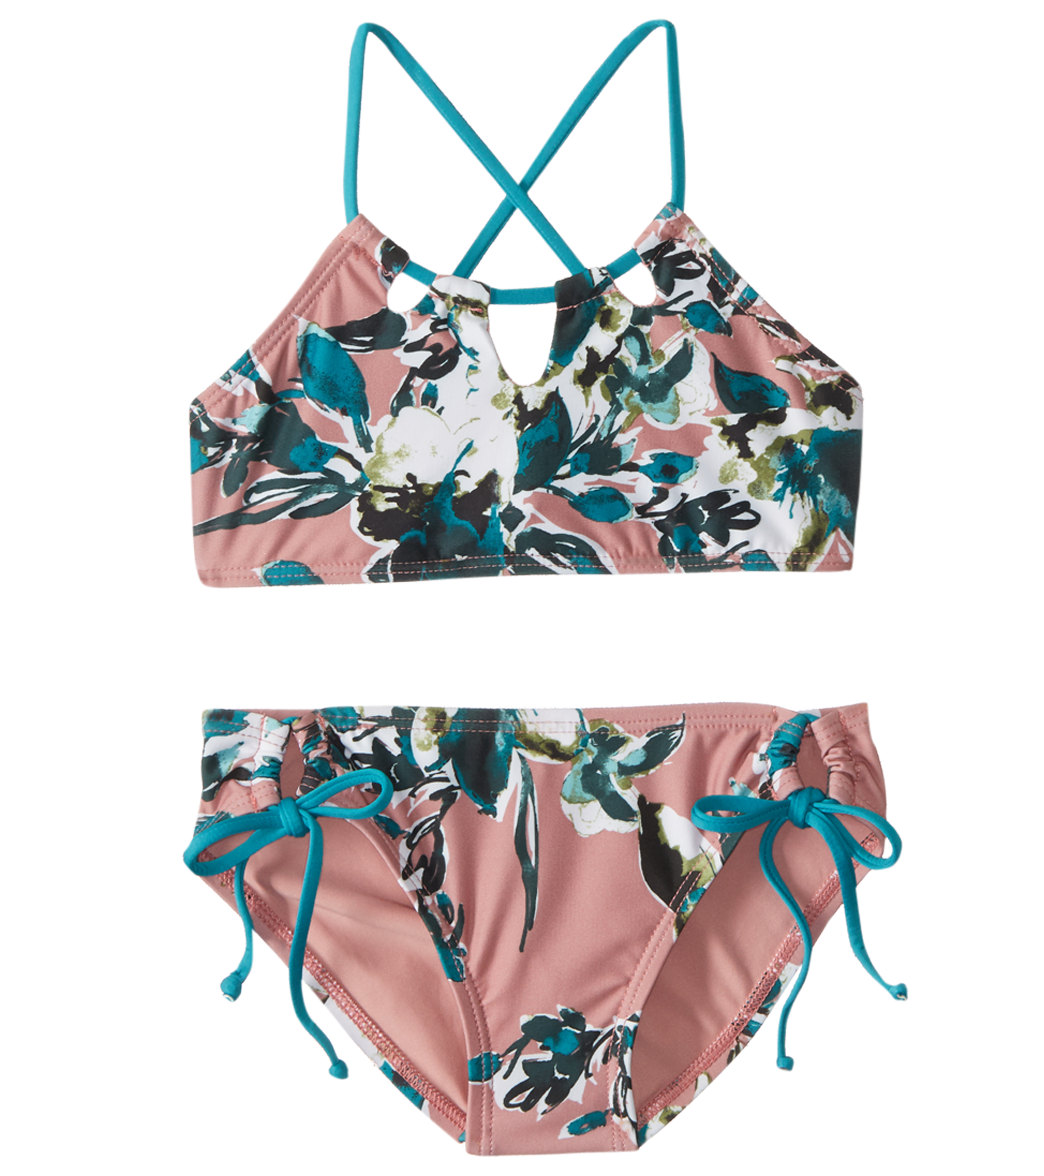 aad0f2105398e Splendid Girls' Watercolor Floral High Neck Two Piece Bikini Set (Big Kid)  at SwimOutlet.com - Free Shipping